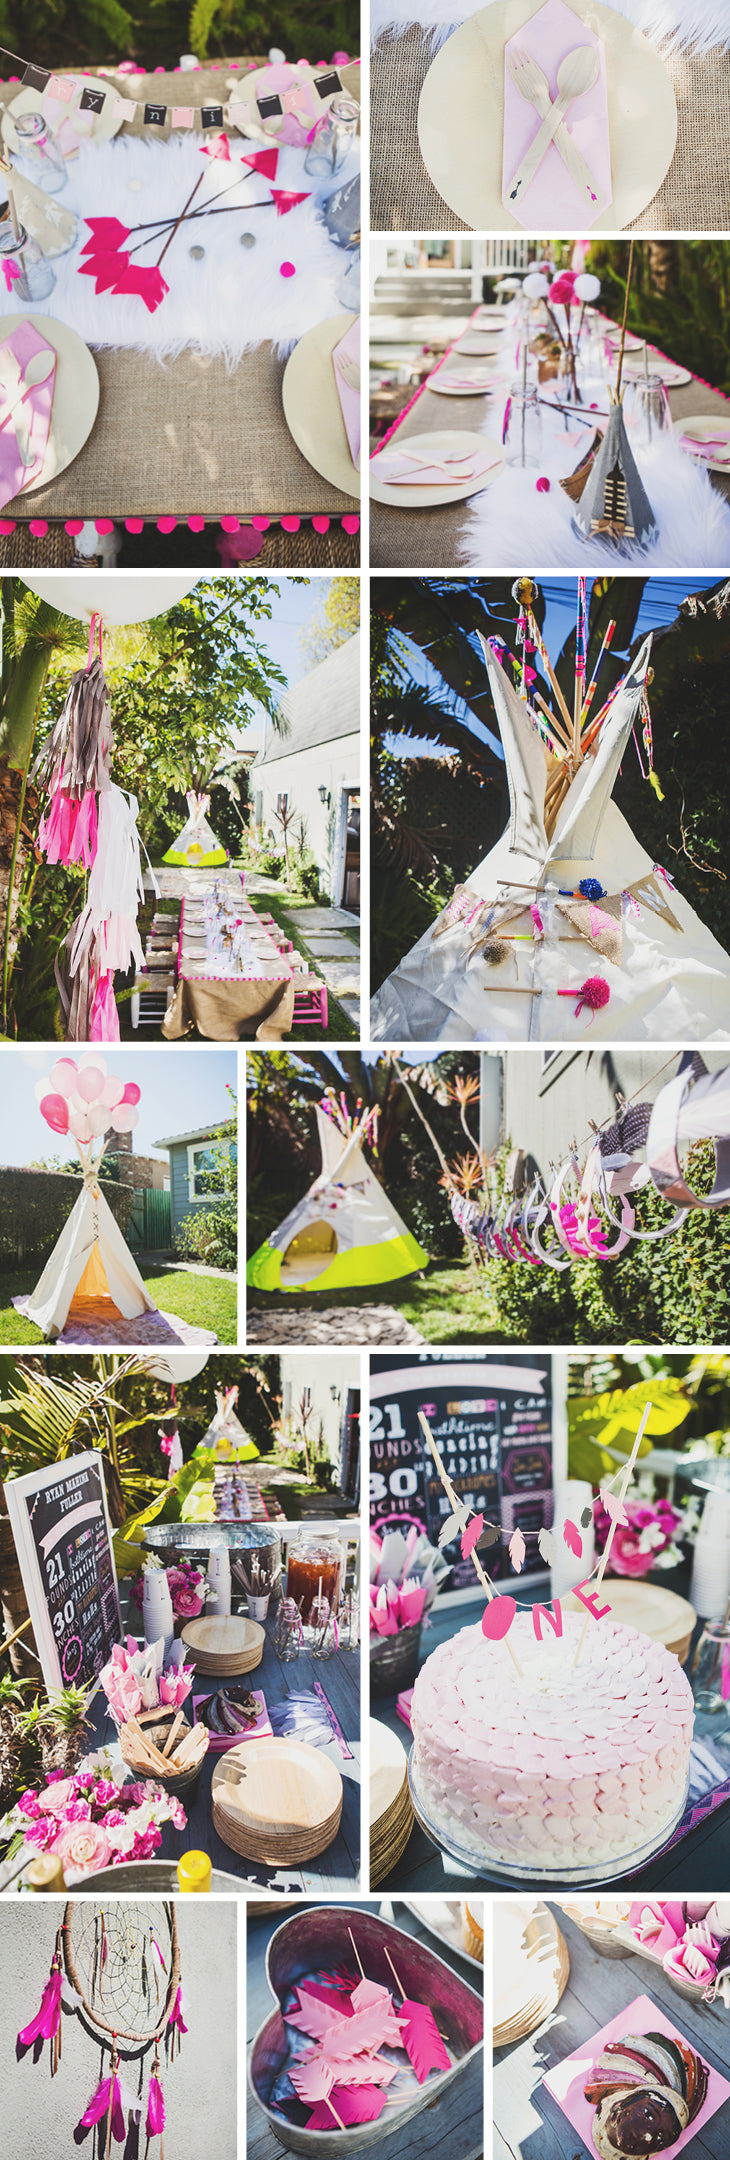 teepee party lookbook